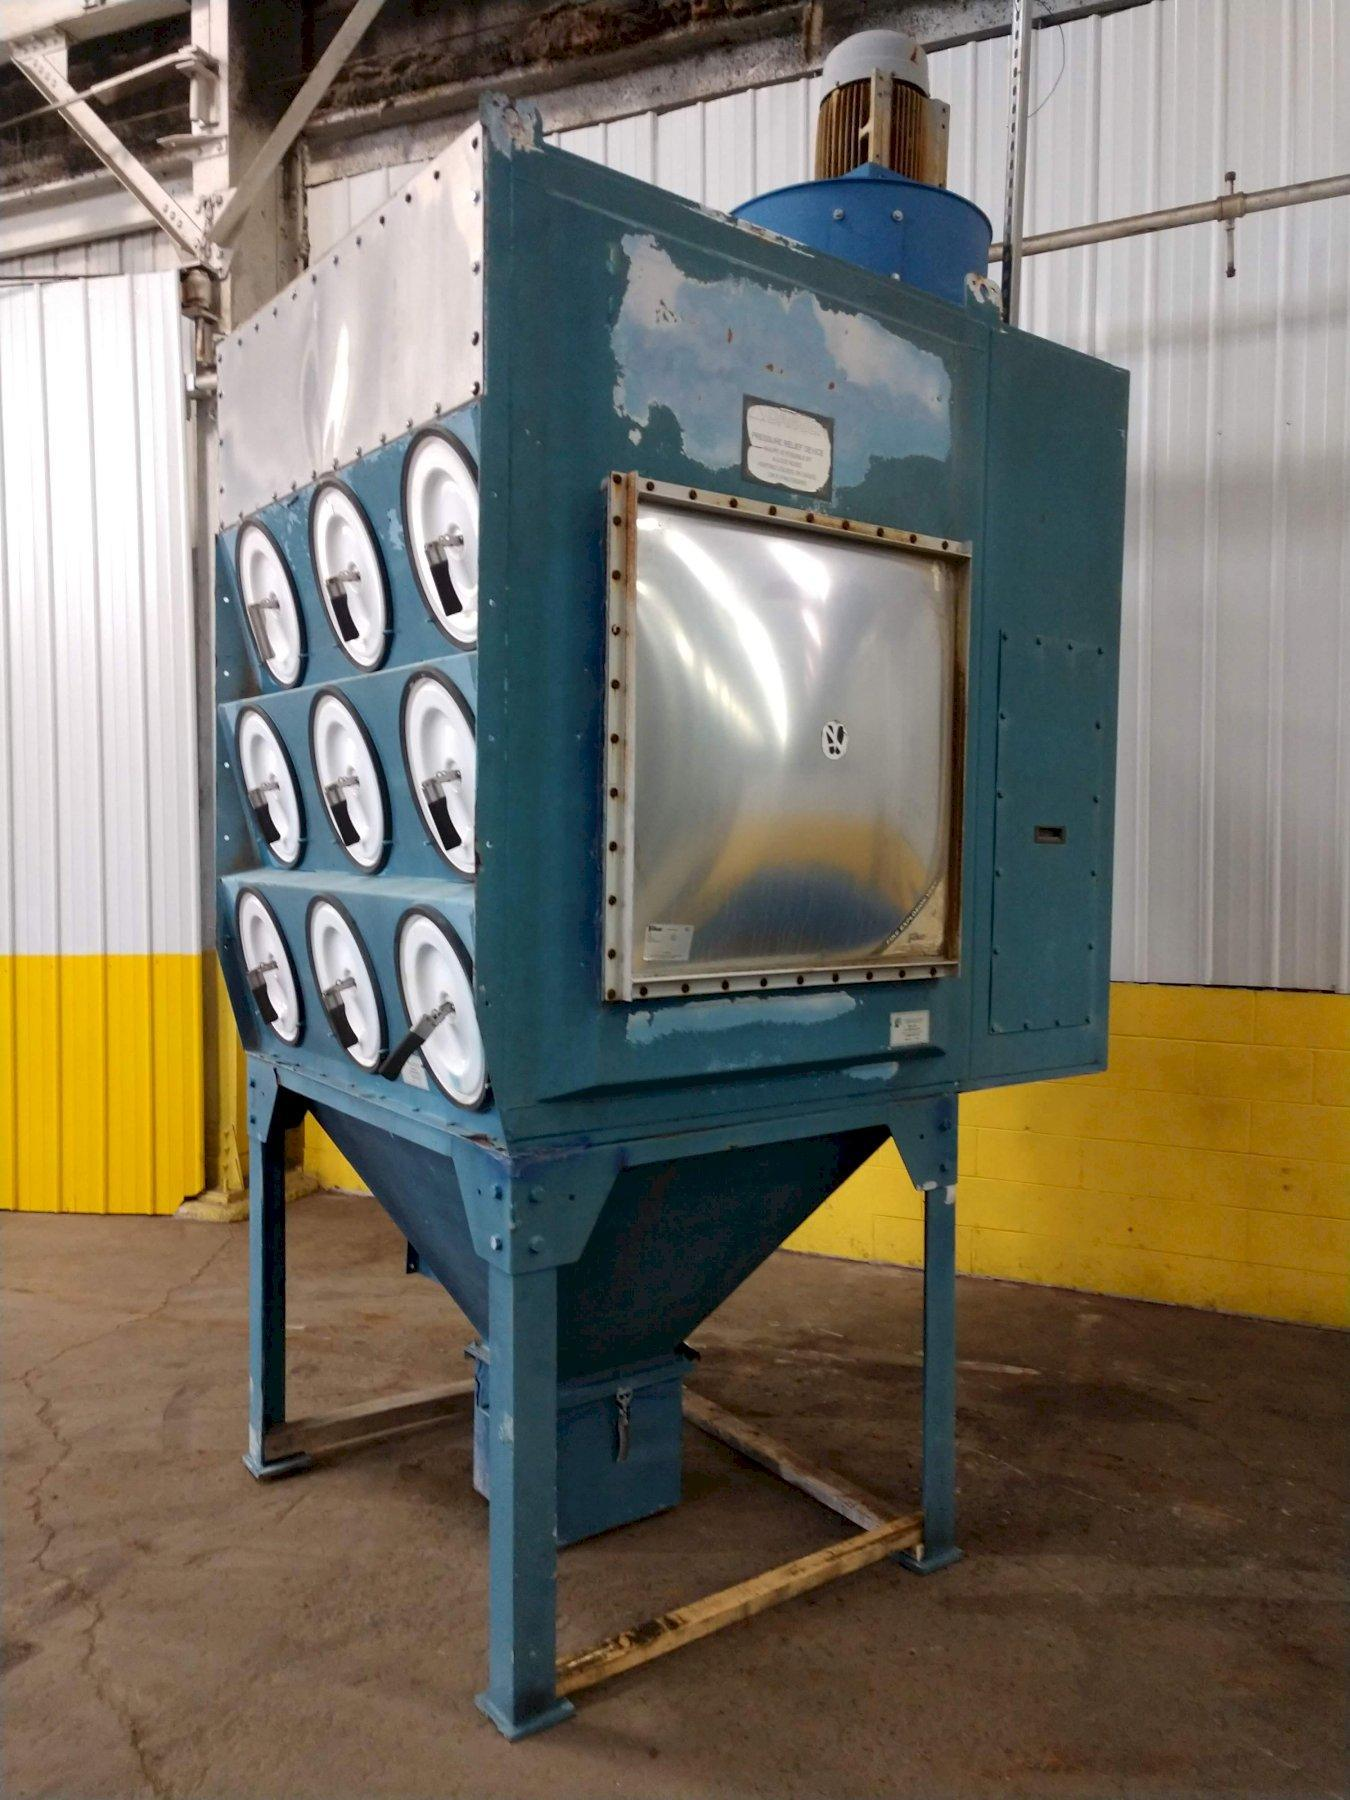 10,000 CFM DONALDSON TORIT DFT3-18 CARTRIDGE TYPE DUST COLLECTOR SYSTEM: STOCK #13577